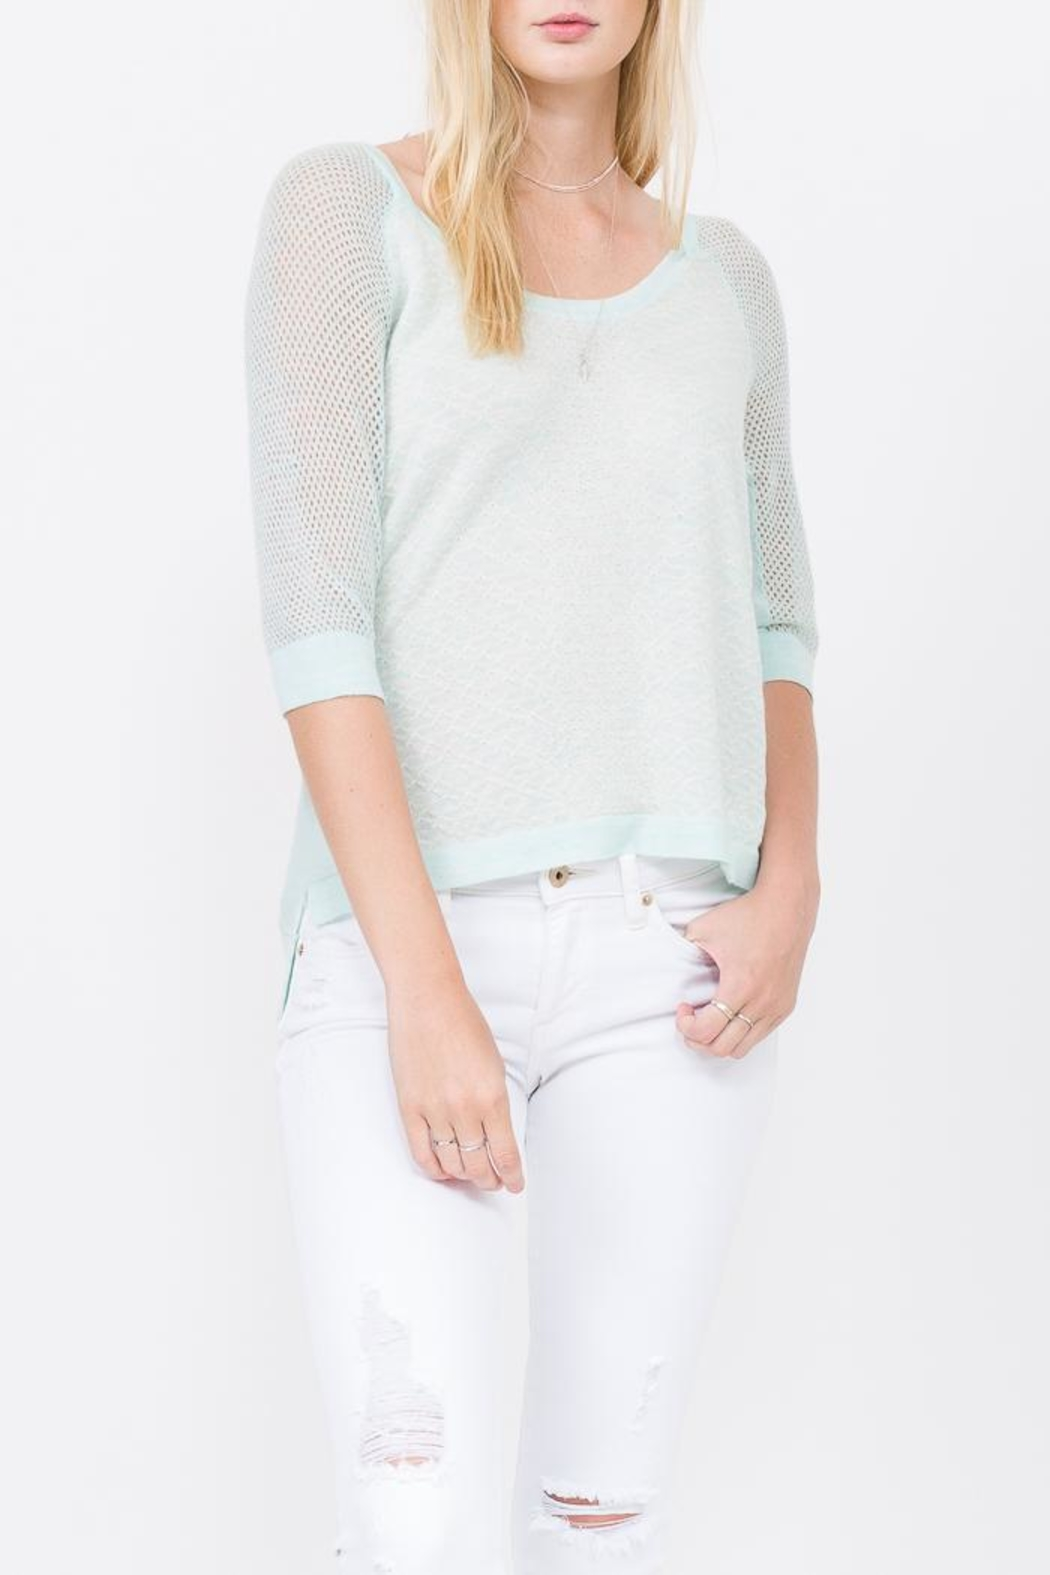 QUINN Grace Panaeled Sweater - Main Image